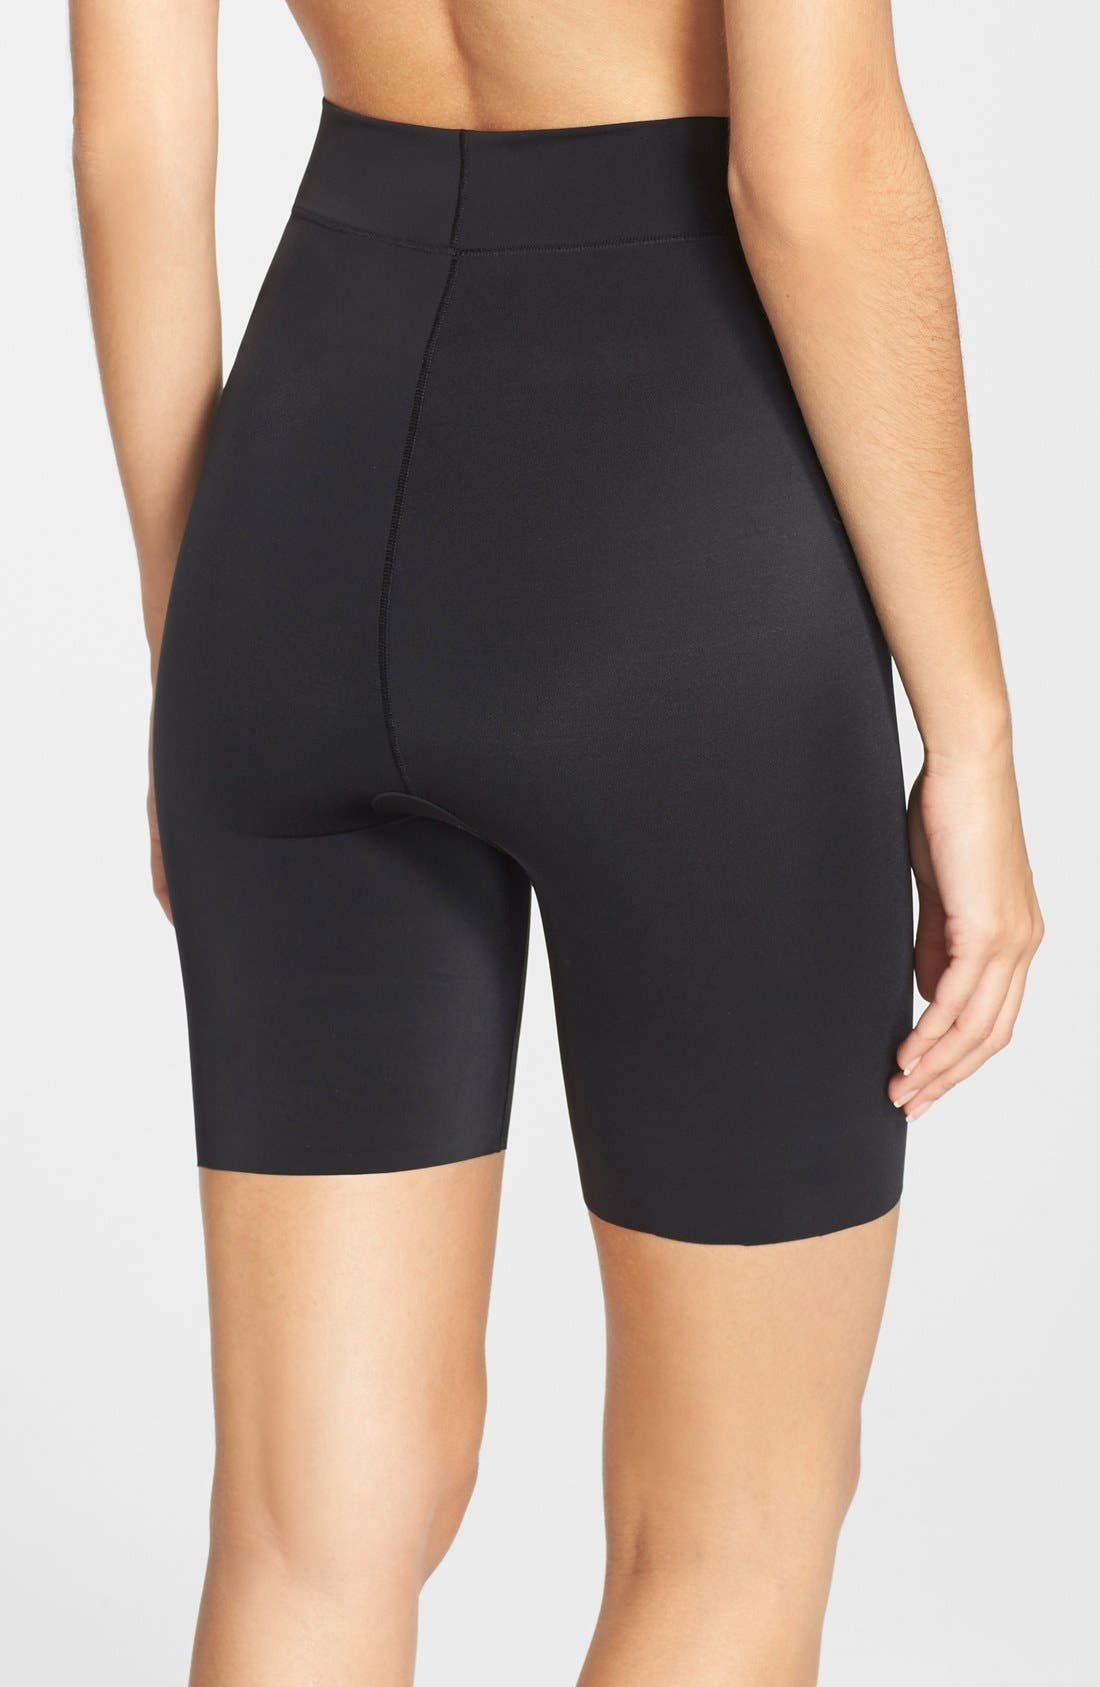 'Mother Tucker - Shortie' High Waist Compression Shorts,                             Alternate thumbnail 4, color,                             BLACK